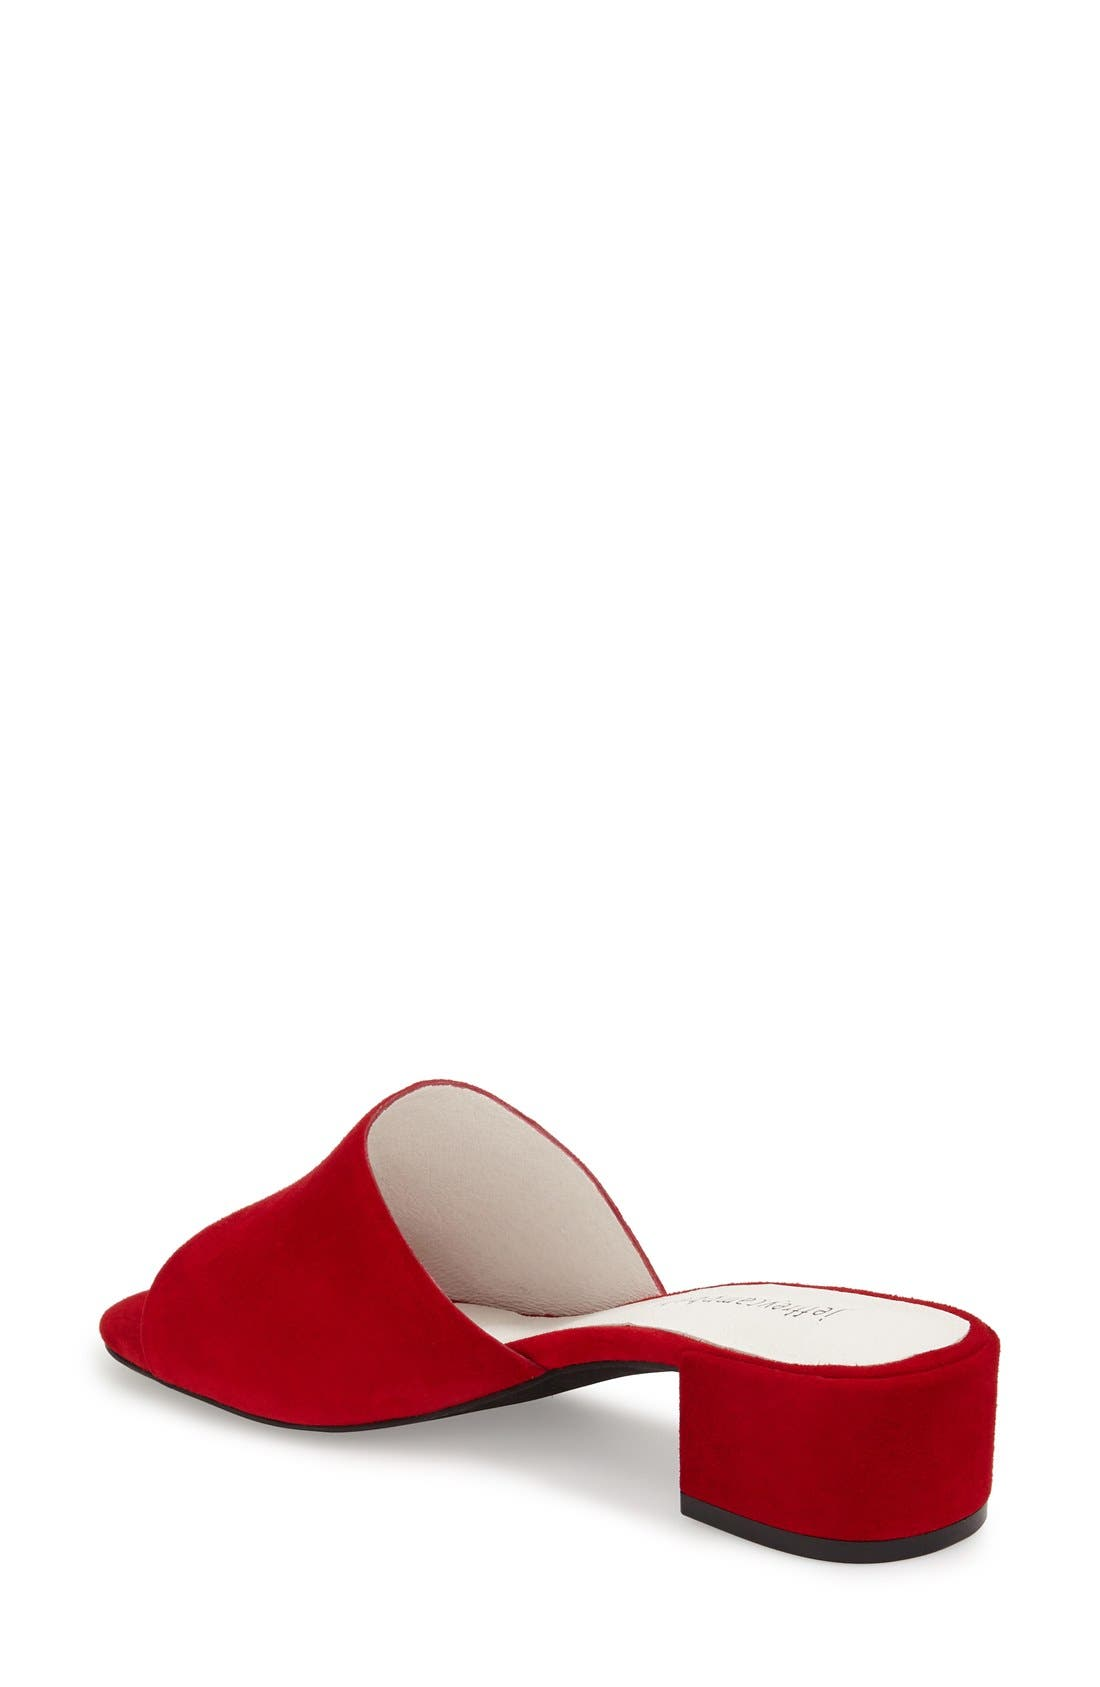 'Beaton' Slide Sandal,                             Alternate thumbnail 19, color,